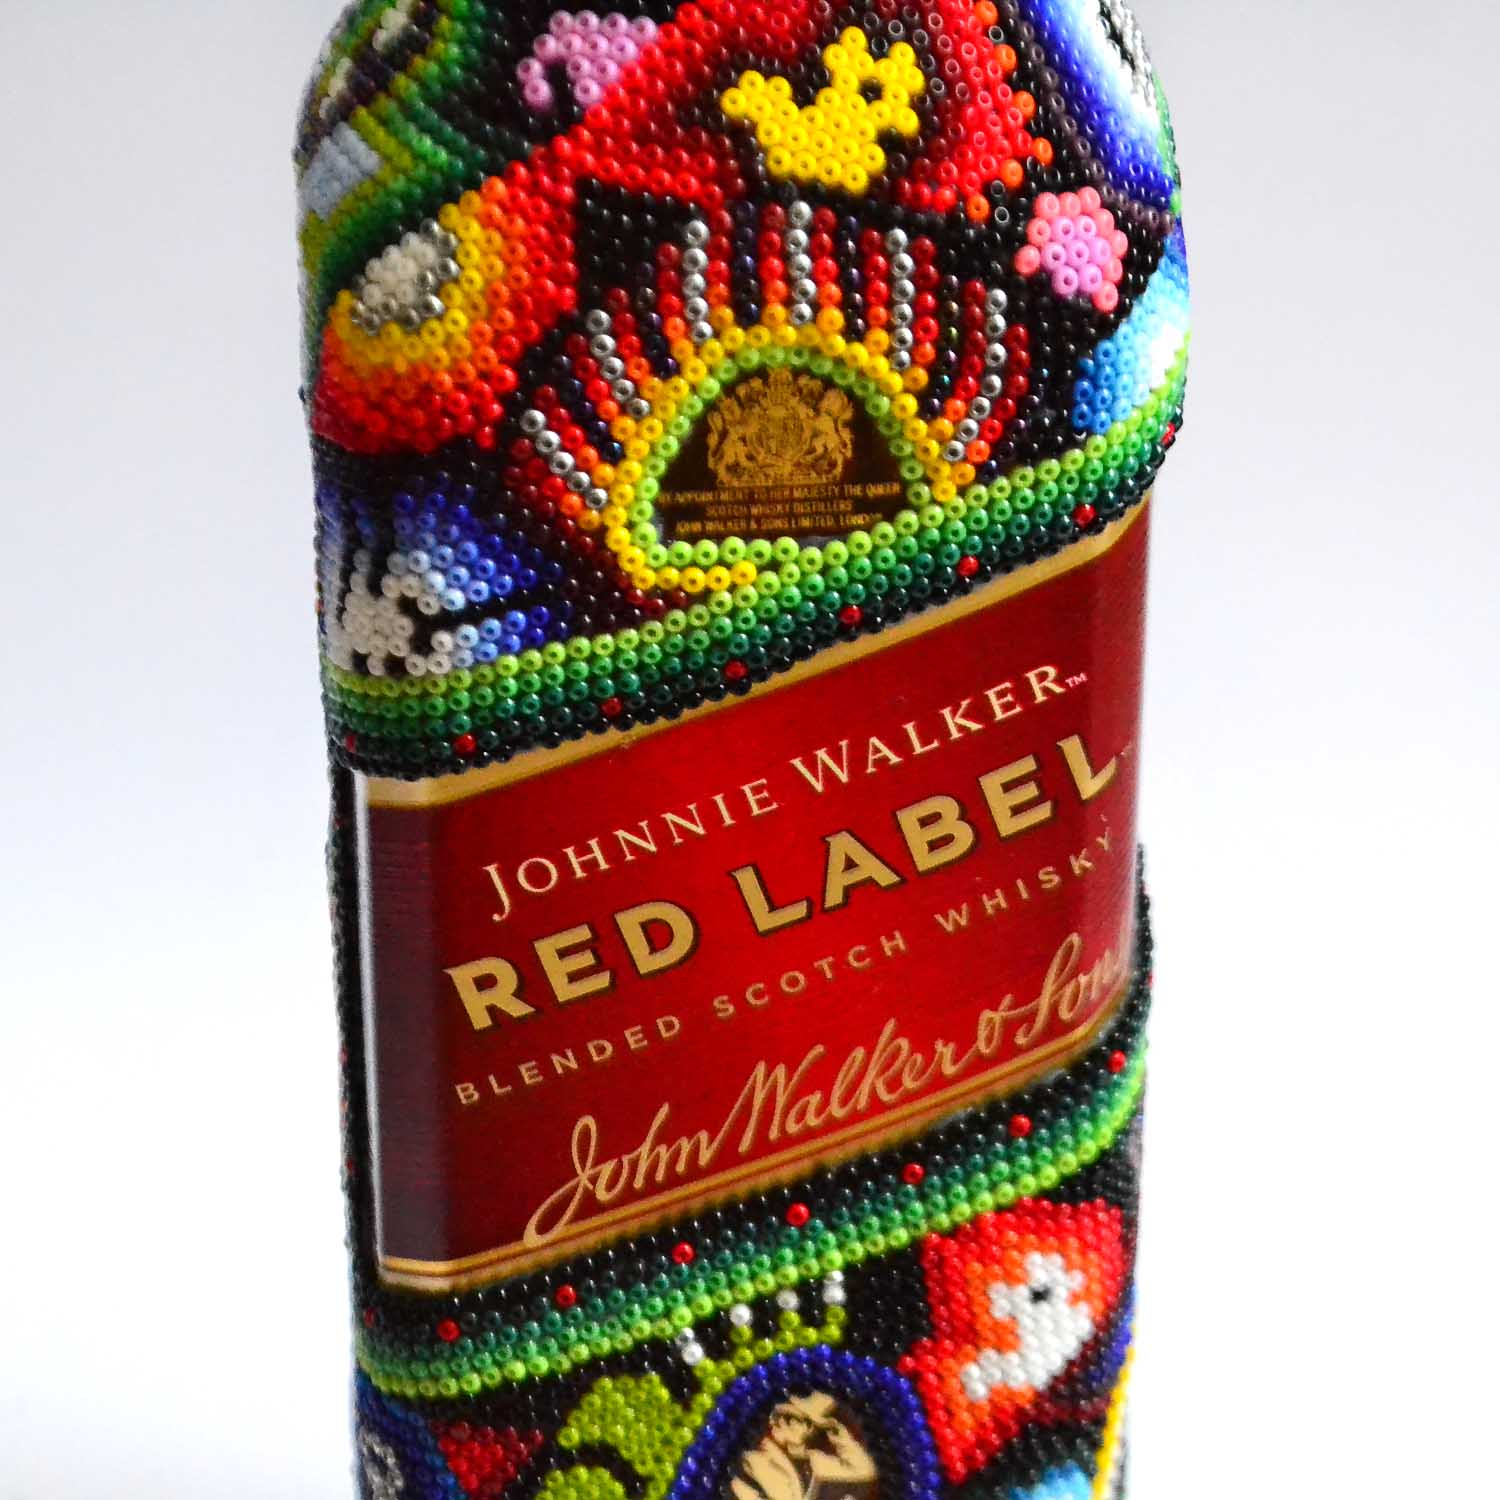 Whisky - Red Label